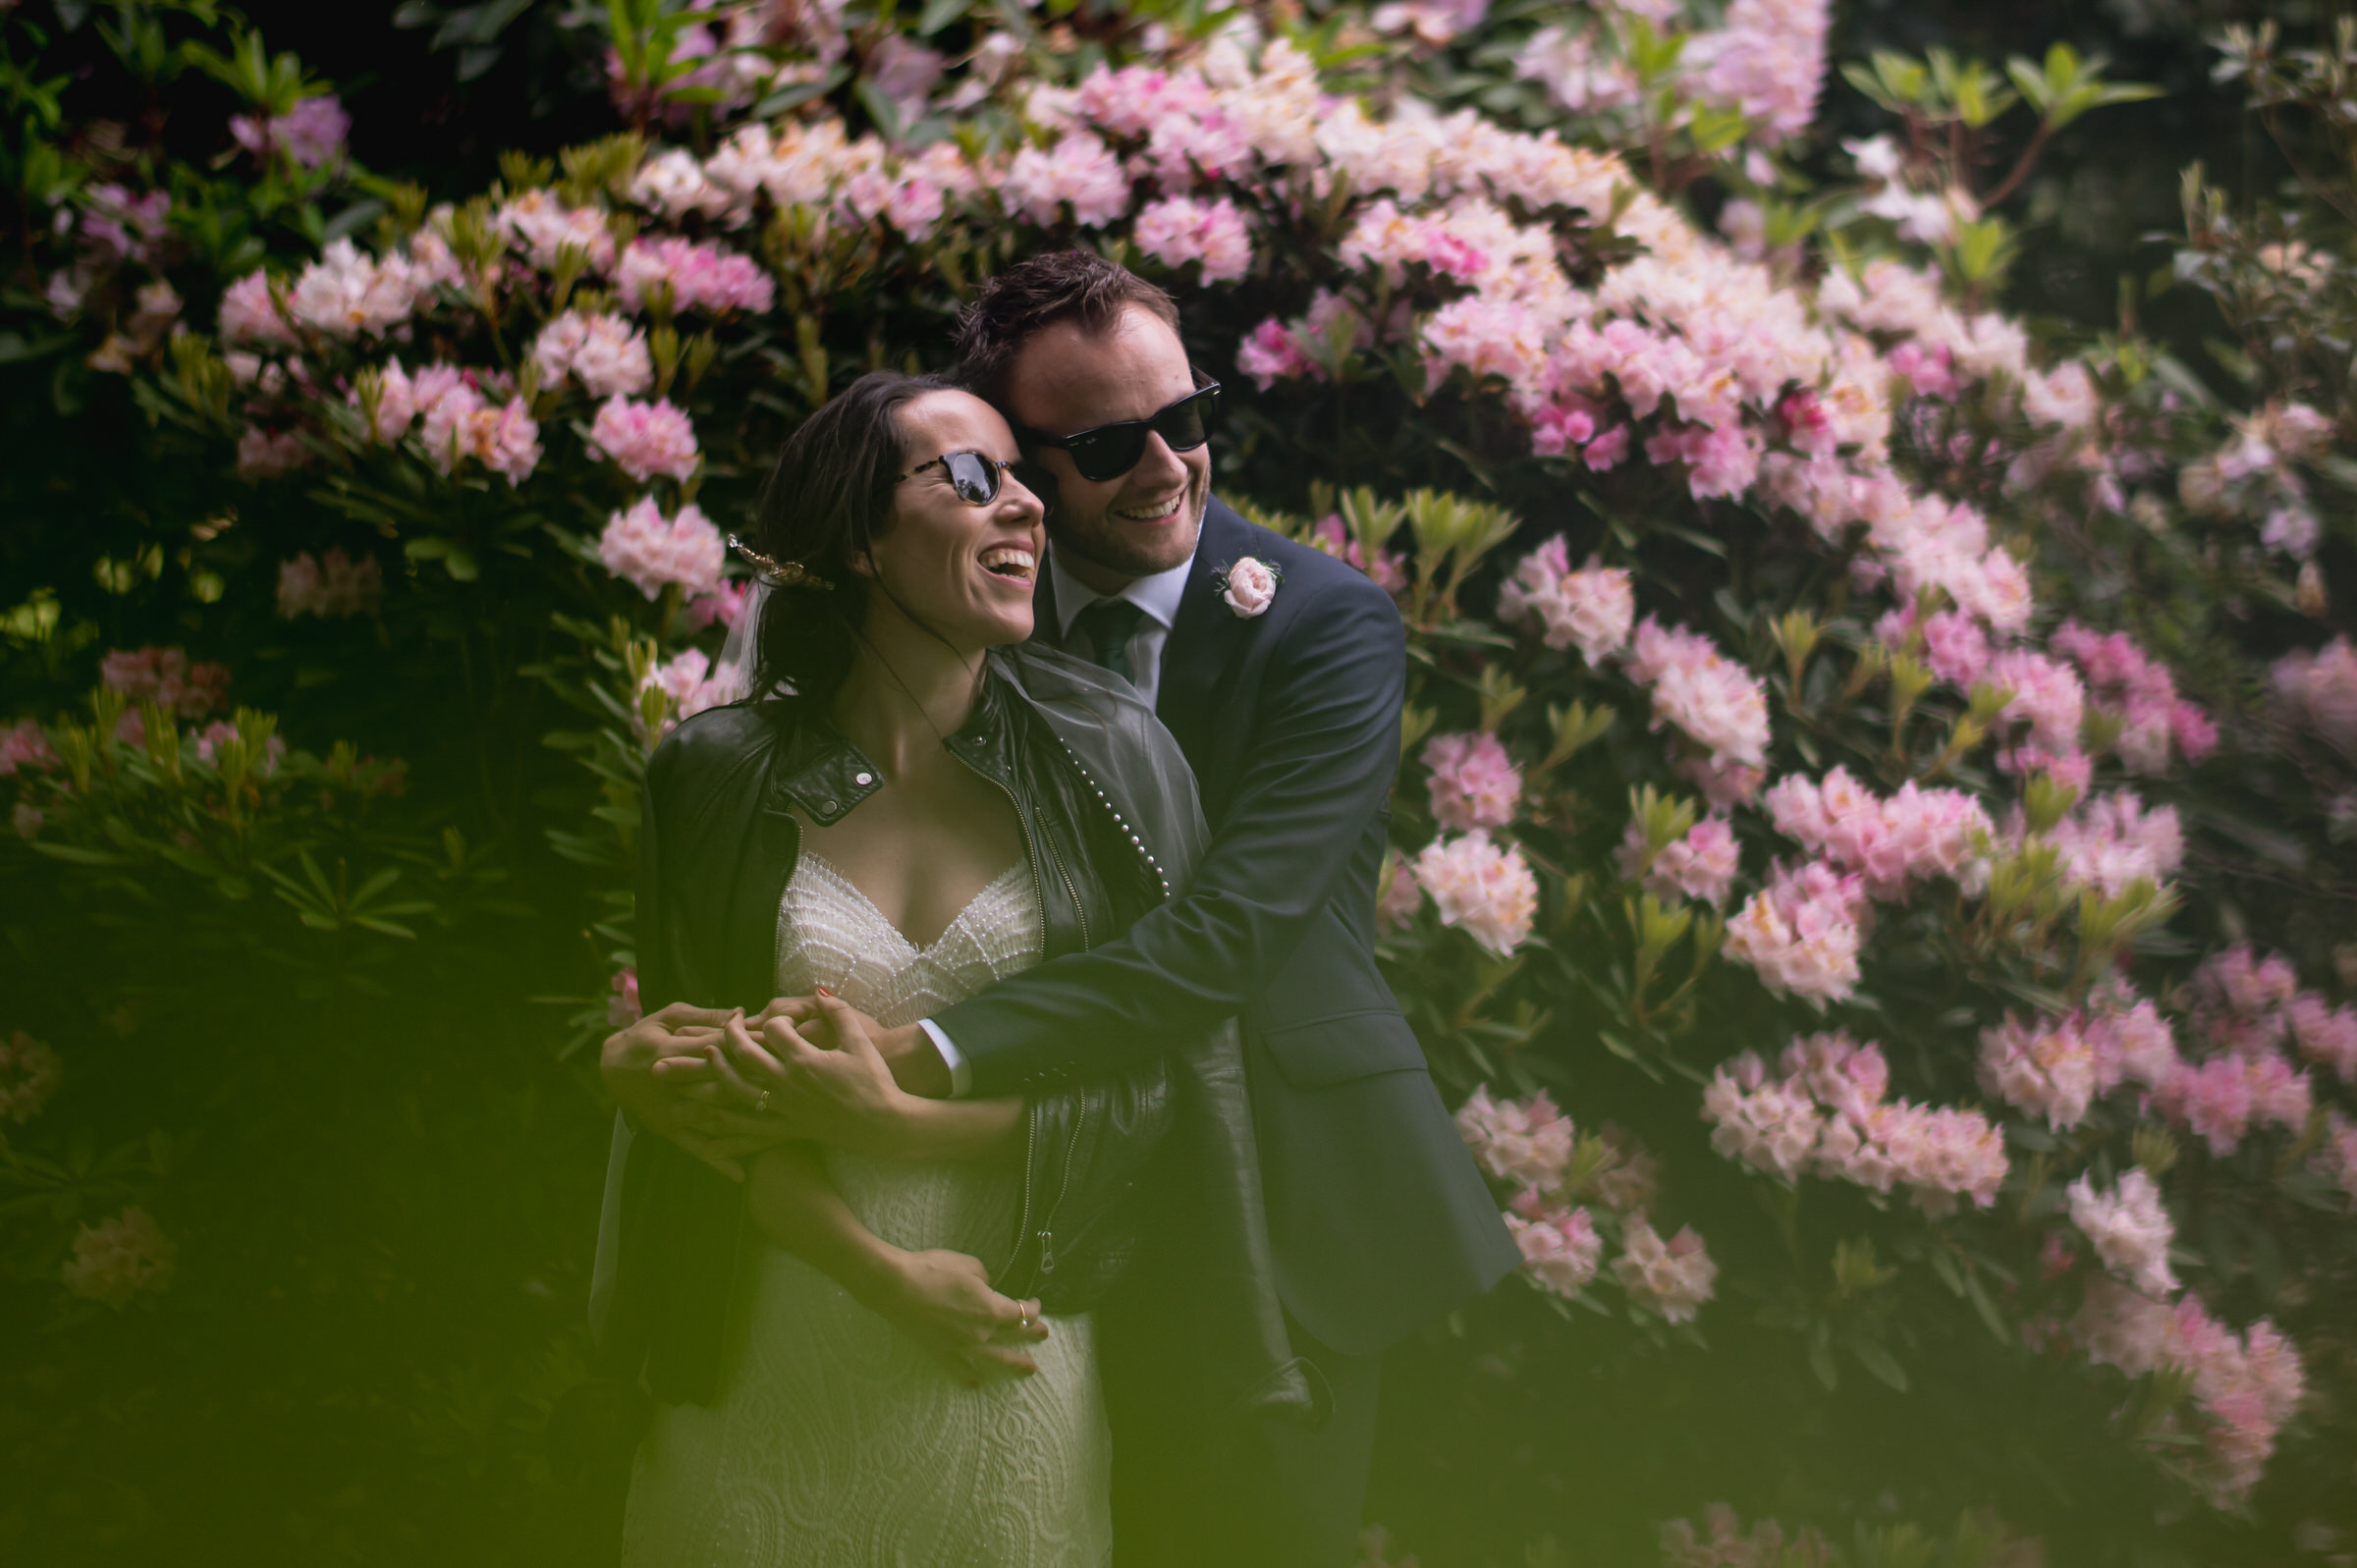 Couple portrait against rhododendron - photo by John Gillooley